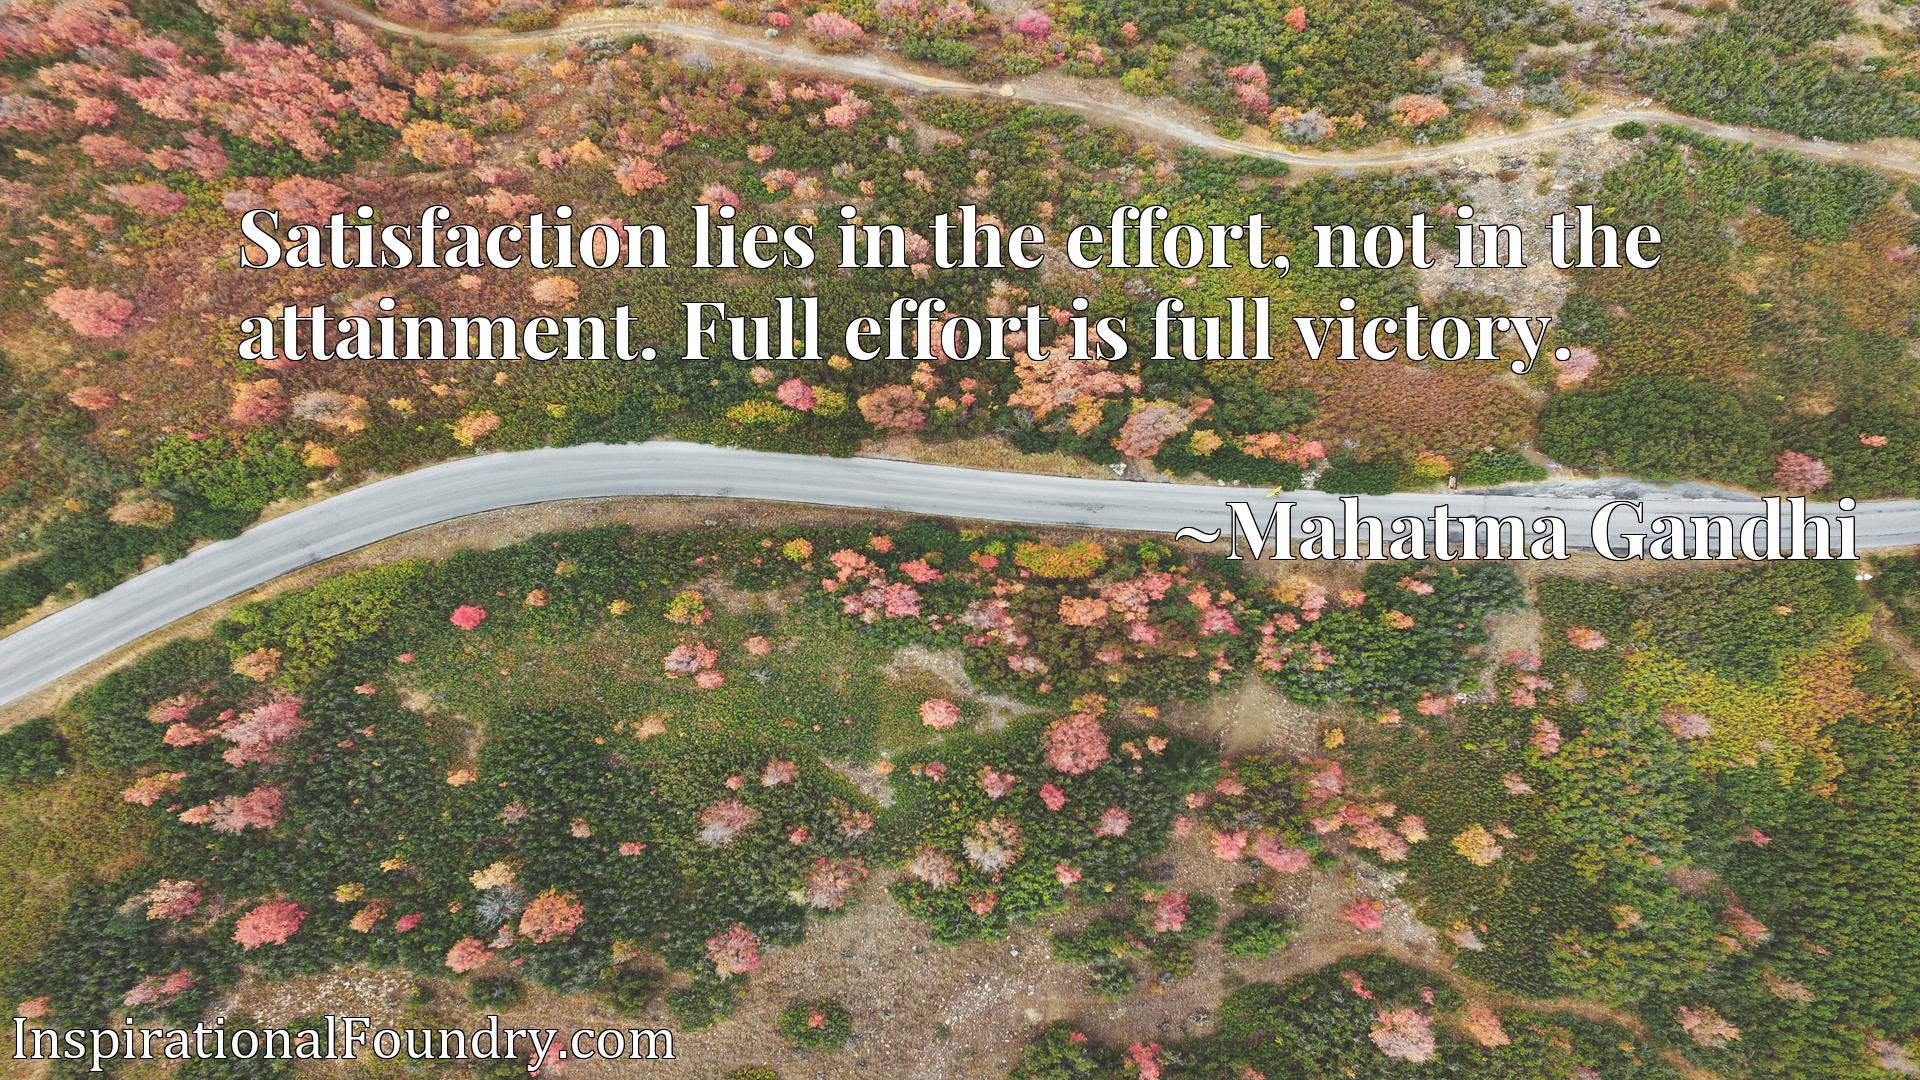 Satisfaction lies in the effort, not in the attainment. Full effort is full victory.